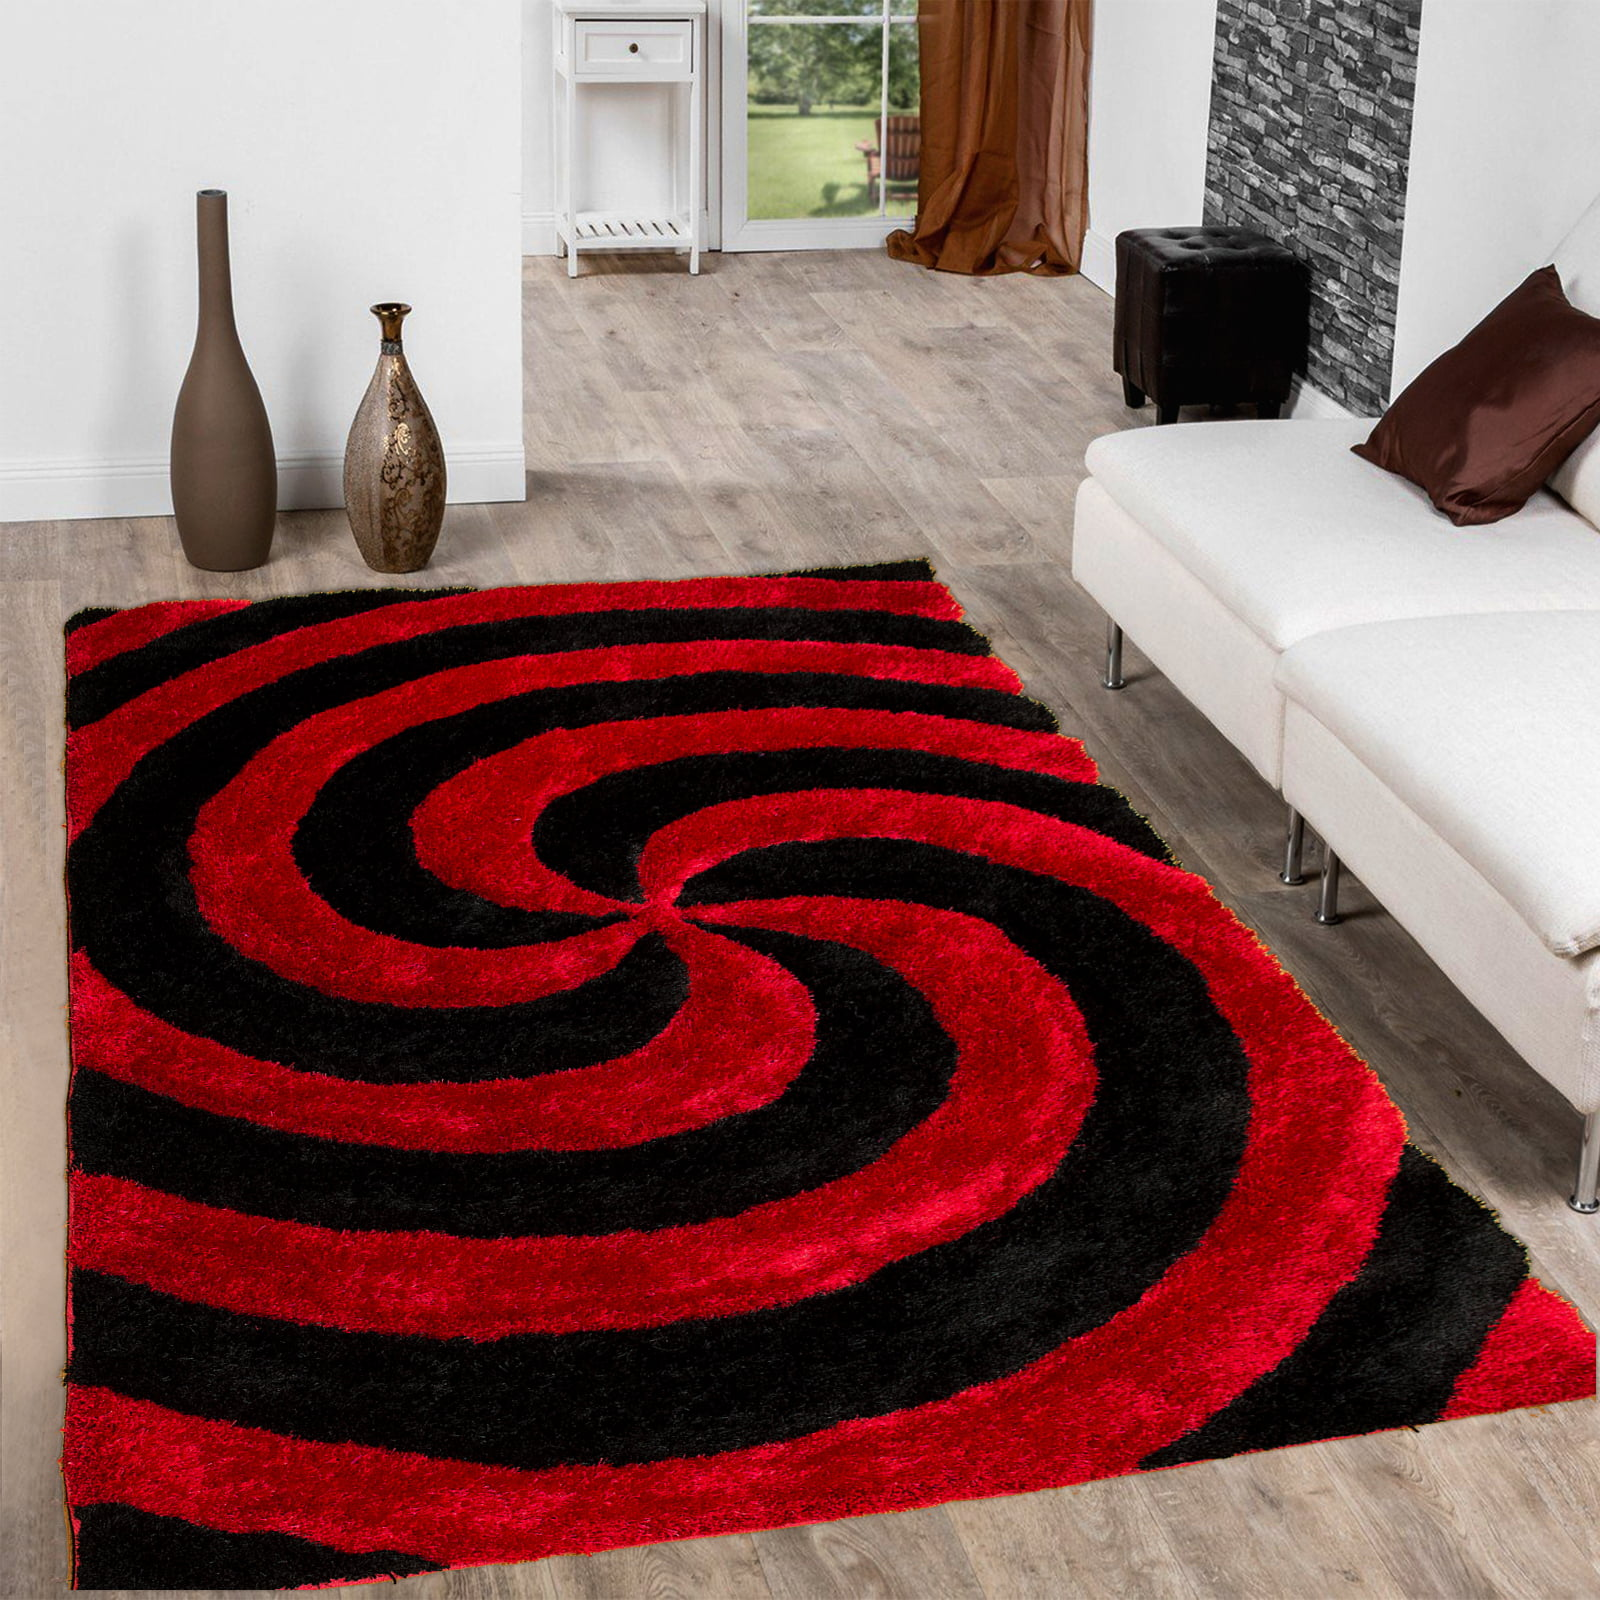 Allstar Red Shaggy Area Rug with 3D Black Spiral Design. Contemporary Formal Casual Hand Tufted (5' x 7') by Overstock